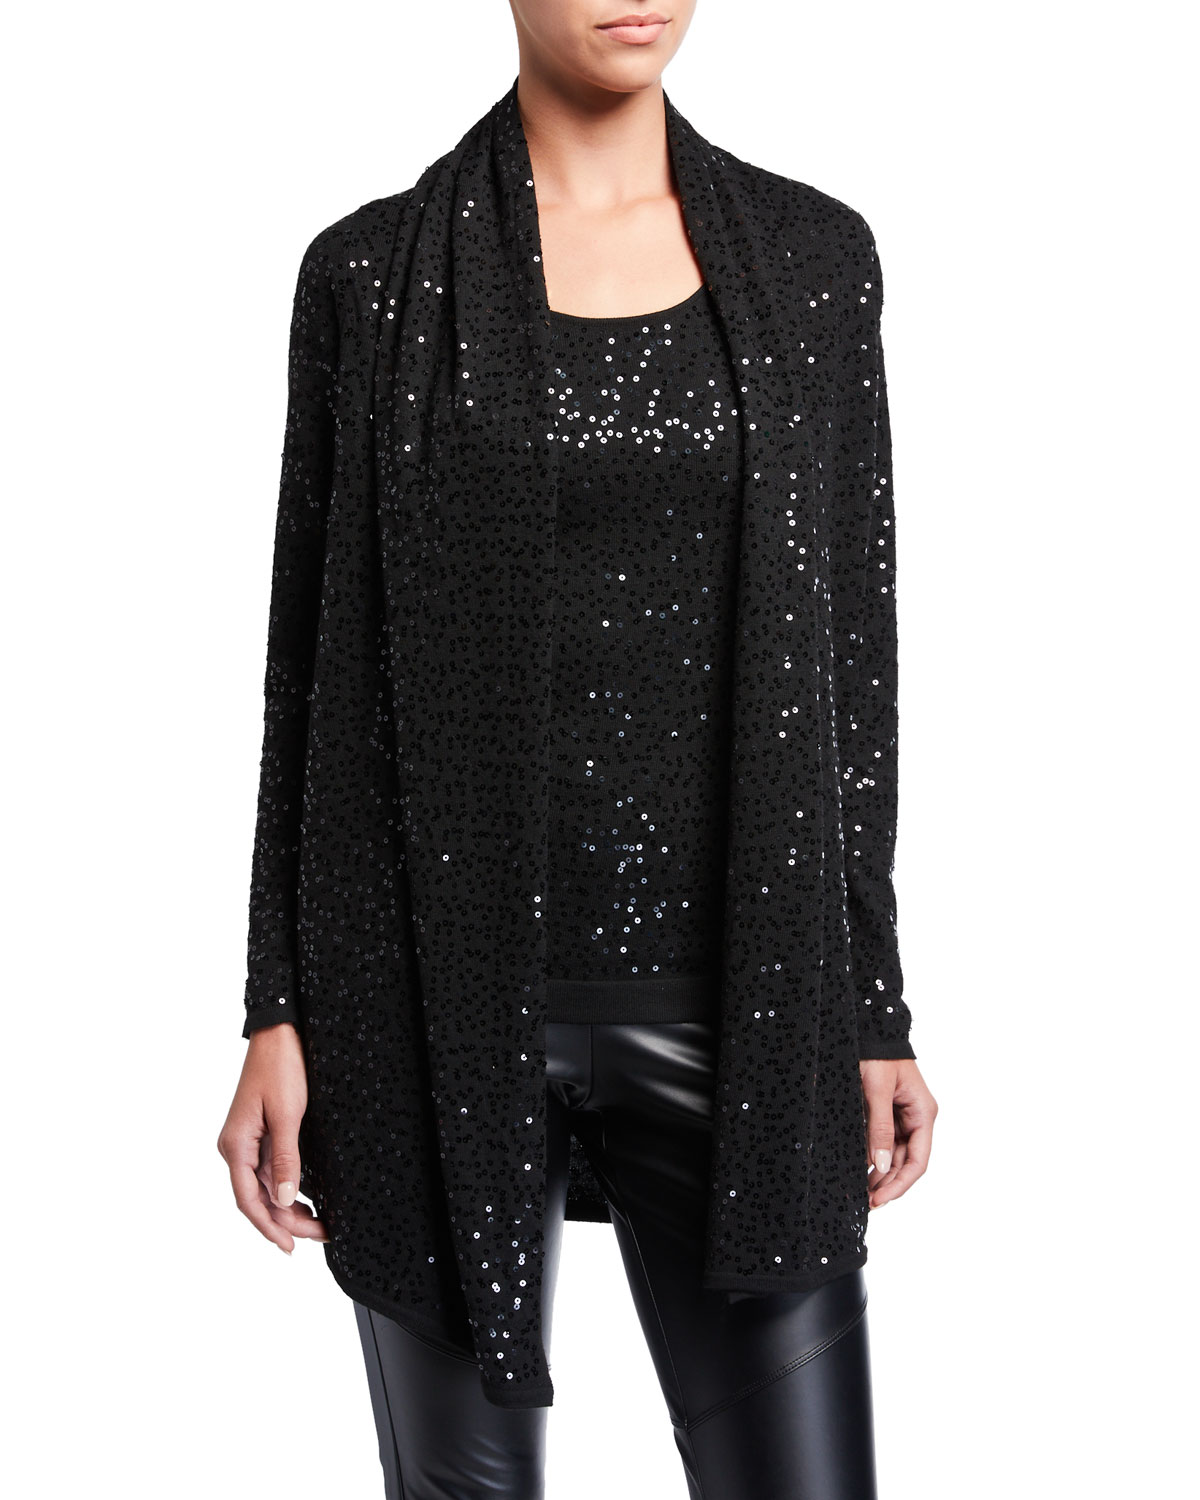 Sequined Lightweight Open Cardigan by Natori